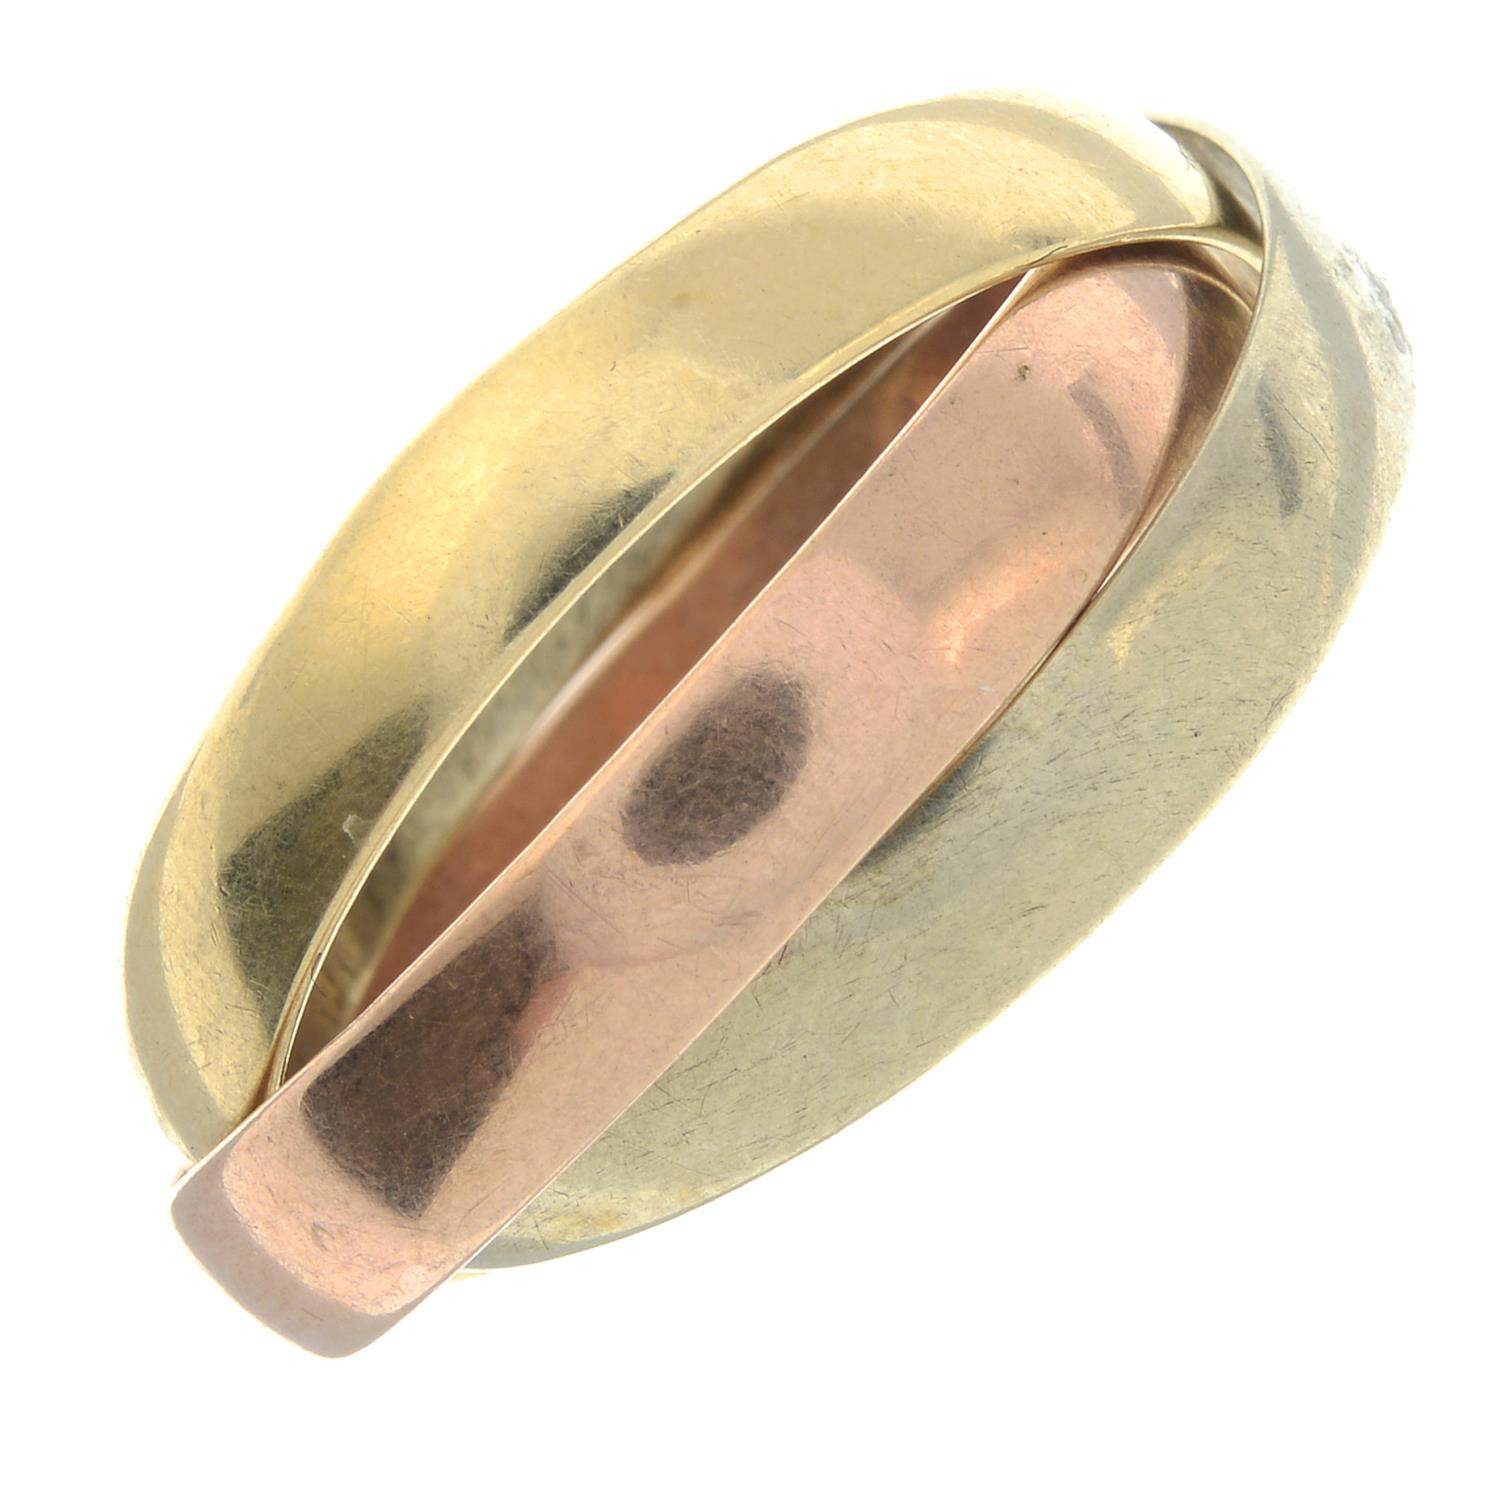 A 9ct gold tri-coloured band ring.Hallmarks for London.Ring size U.